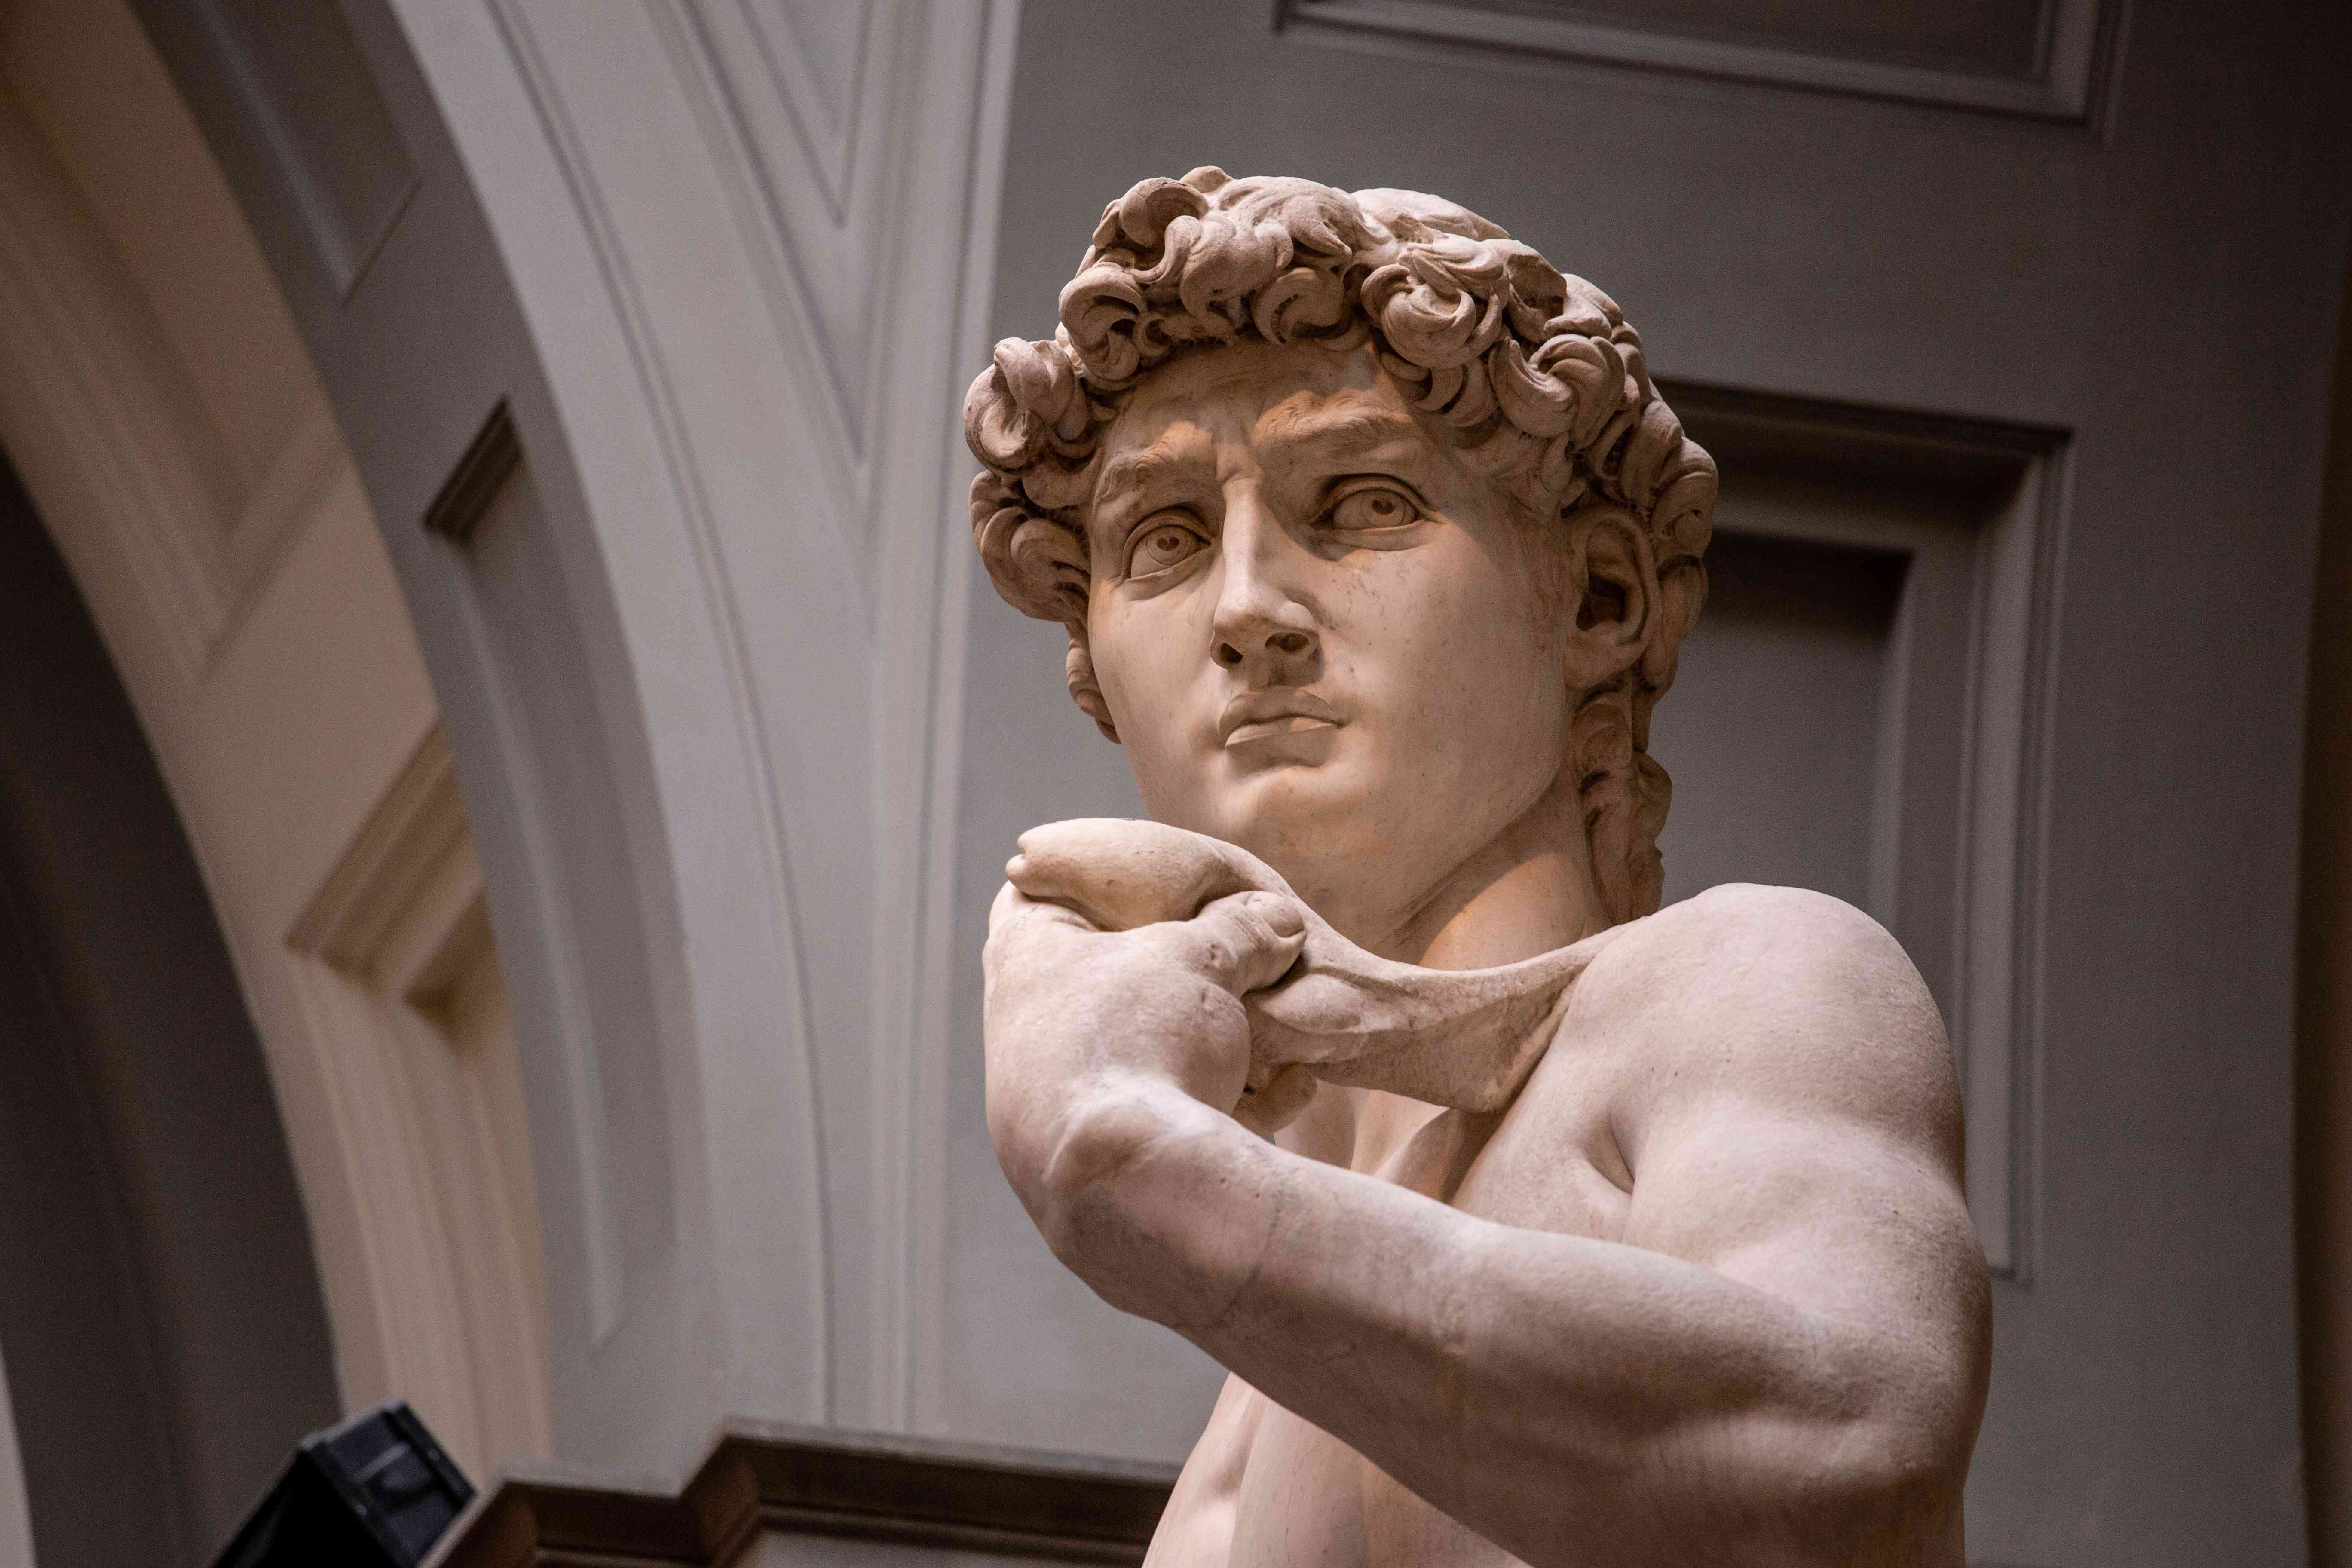 Michelangelo's David in the Galleria dell'Accademia, Florence, Italy